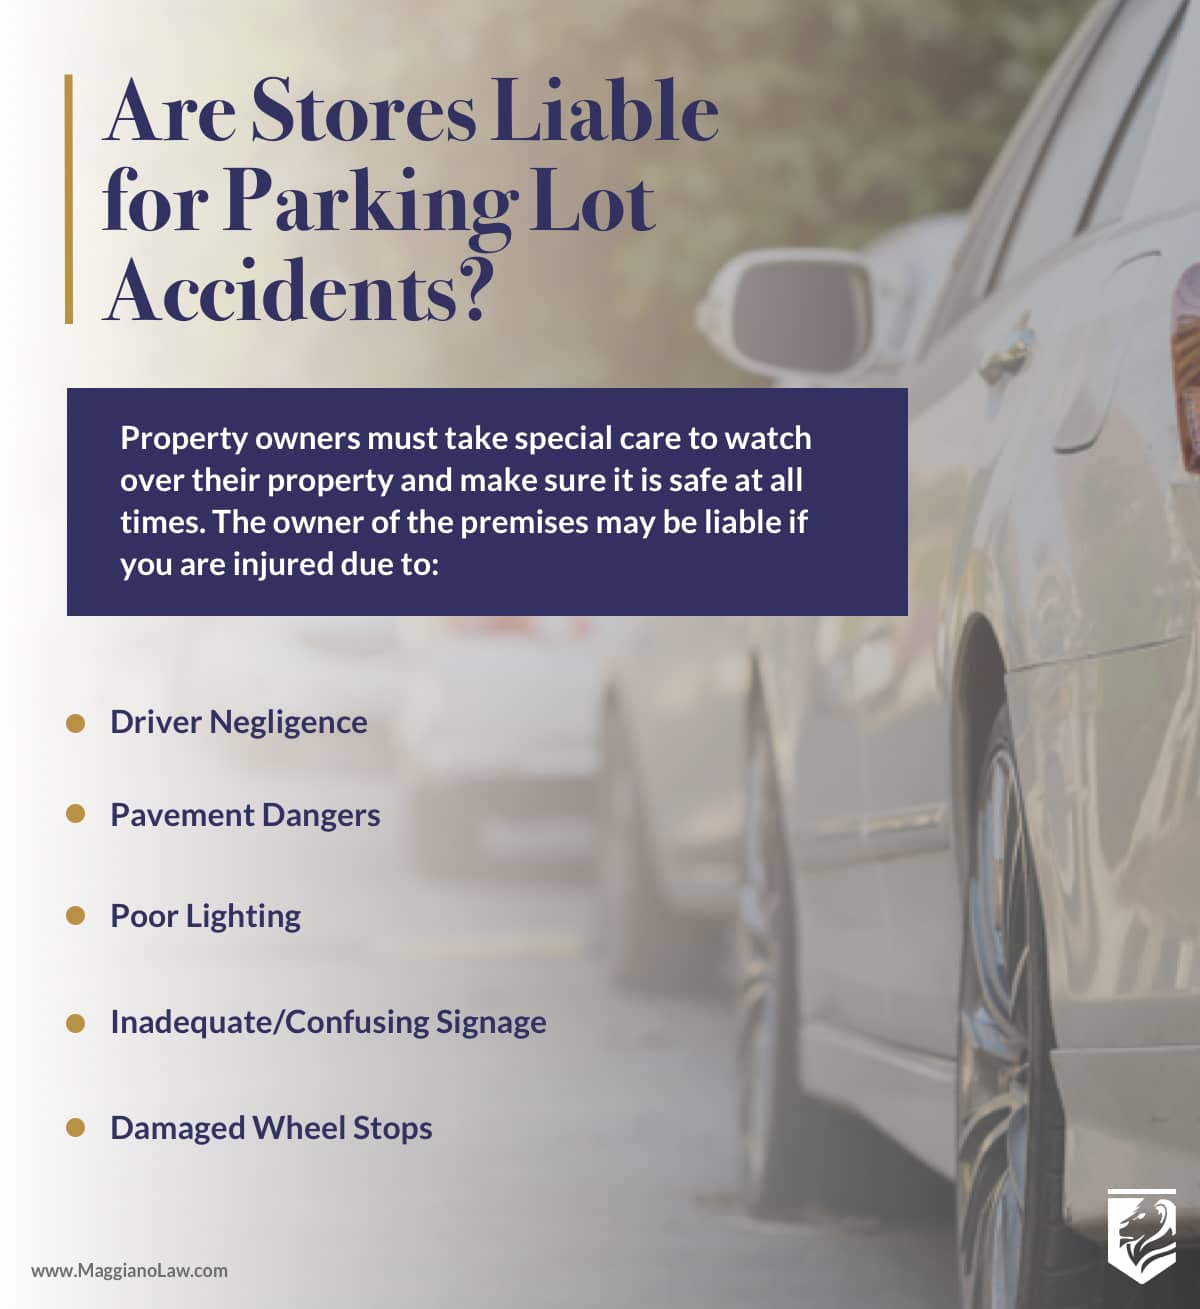 Are Stores Liable for Parking Lot Accidents? | Maggiano, DiGirolamo and Lizzi